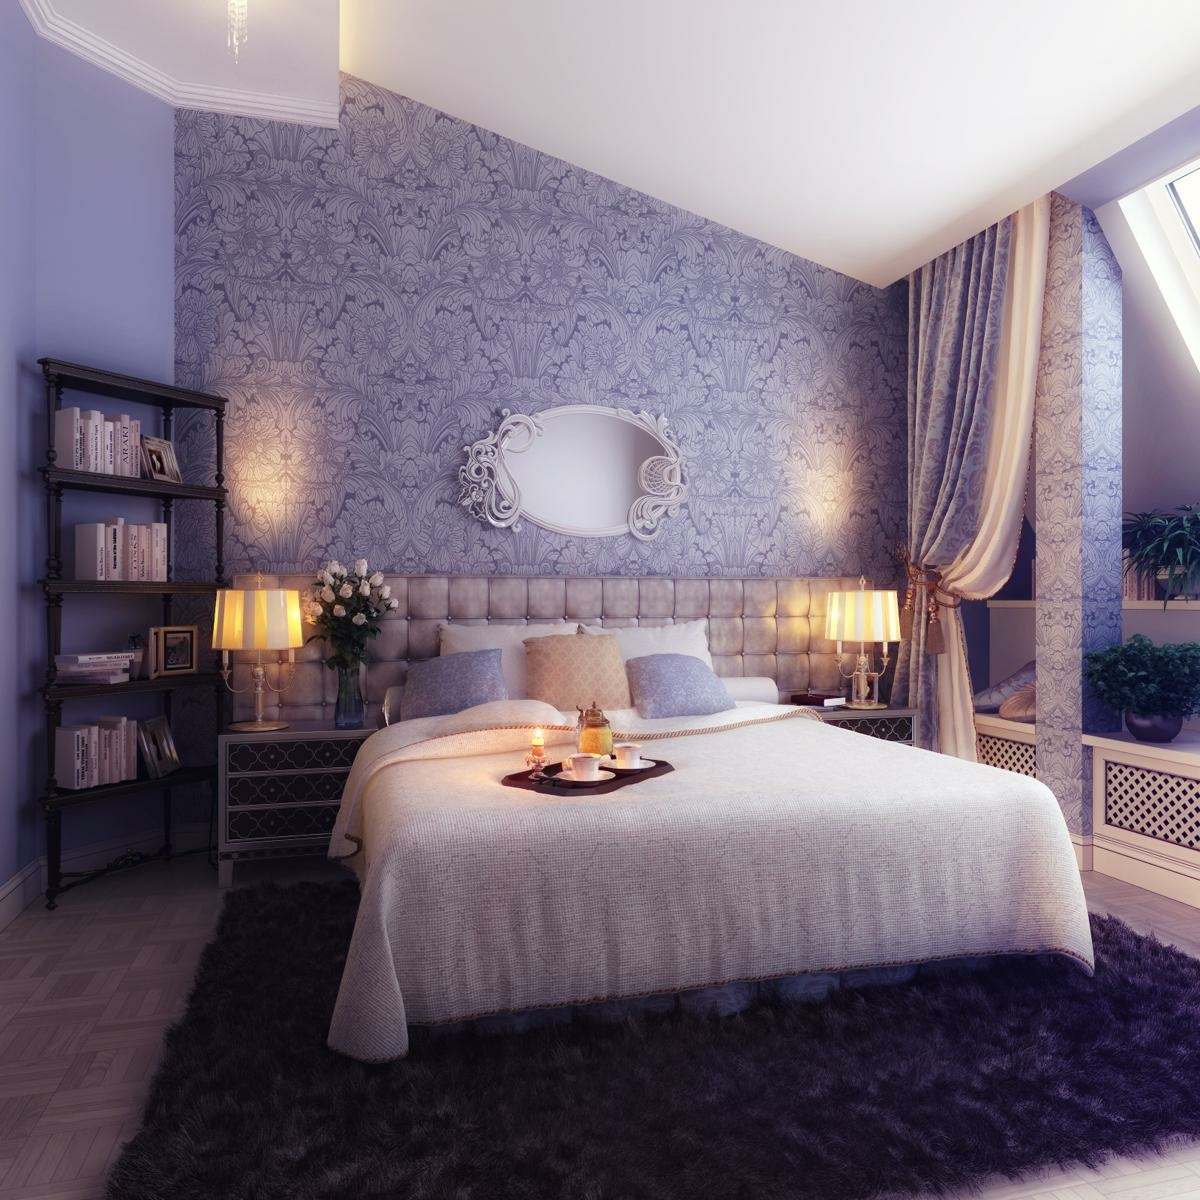 Bedrooms with traditional elegance - Wall hangings for bedroom ...